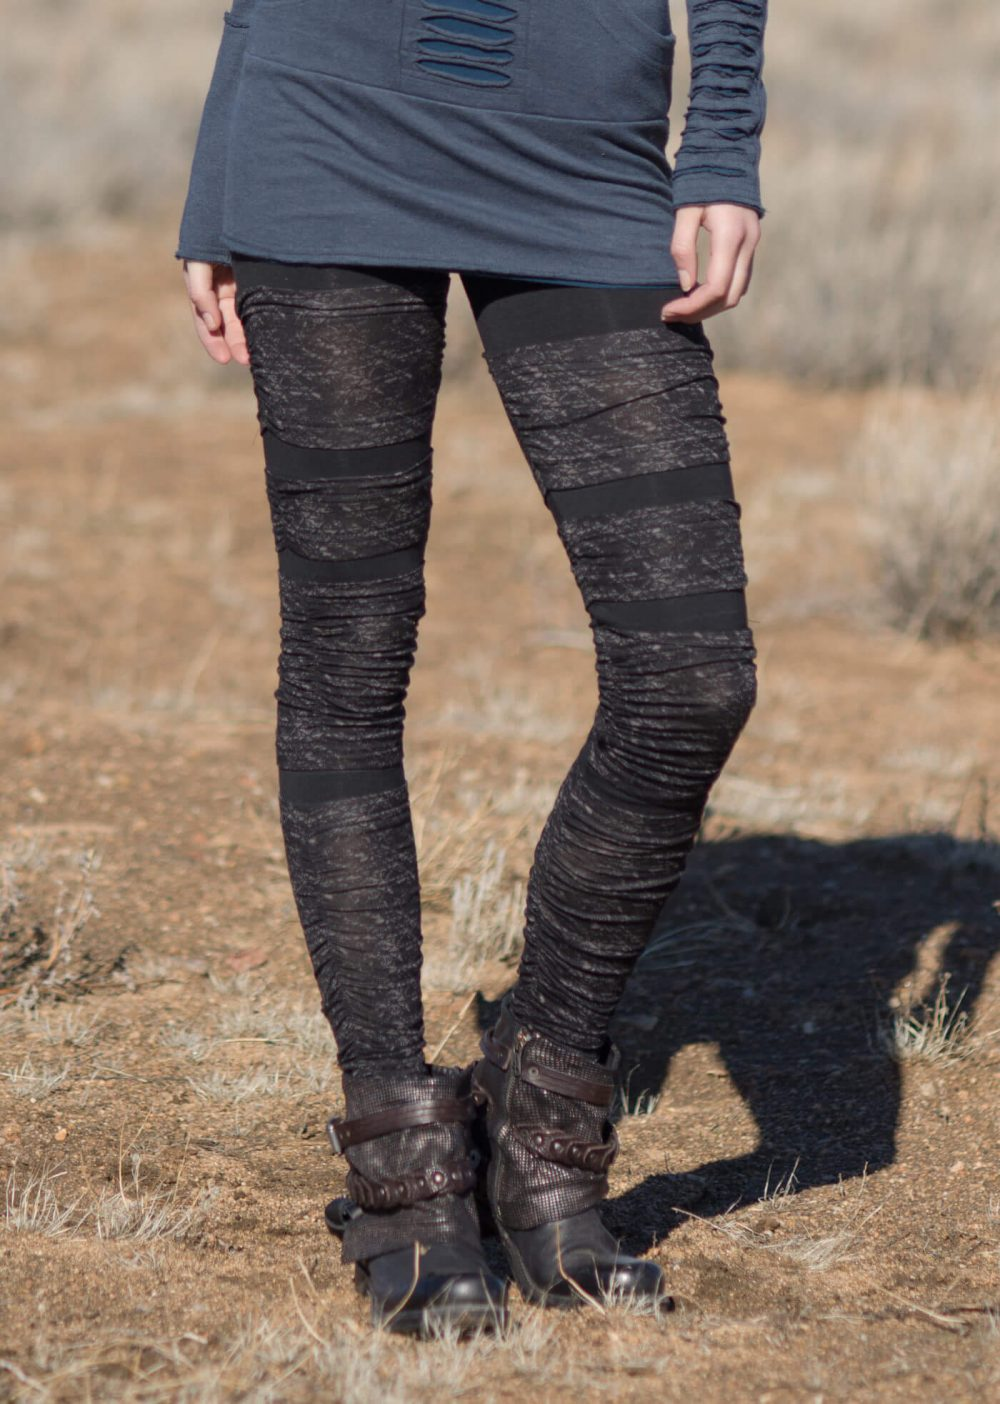 Kryptic Leggings in Bamboo & Organic Cotton by Nomads Hemp Wear